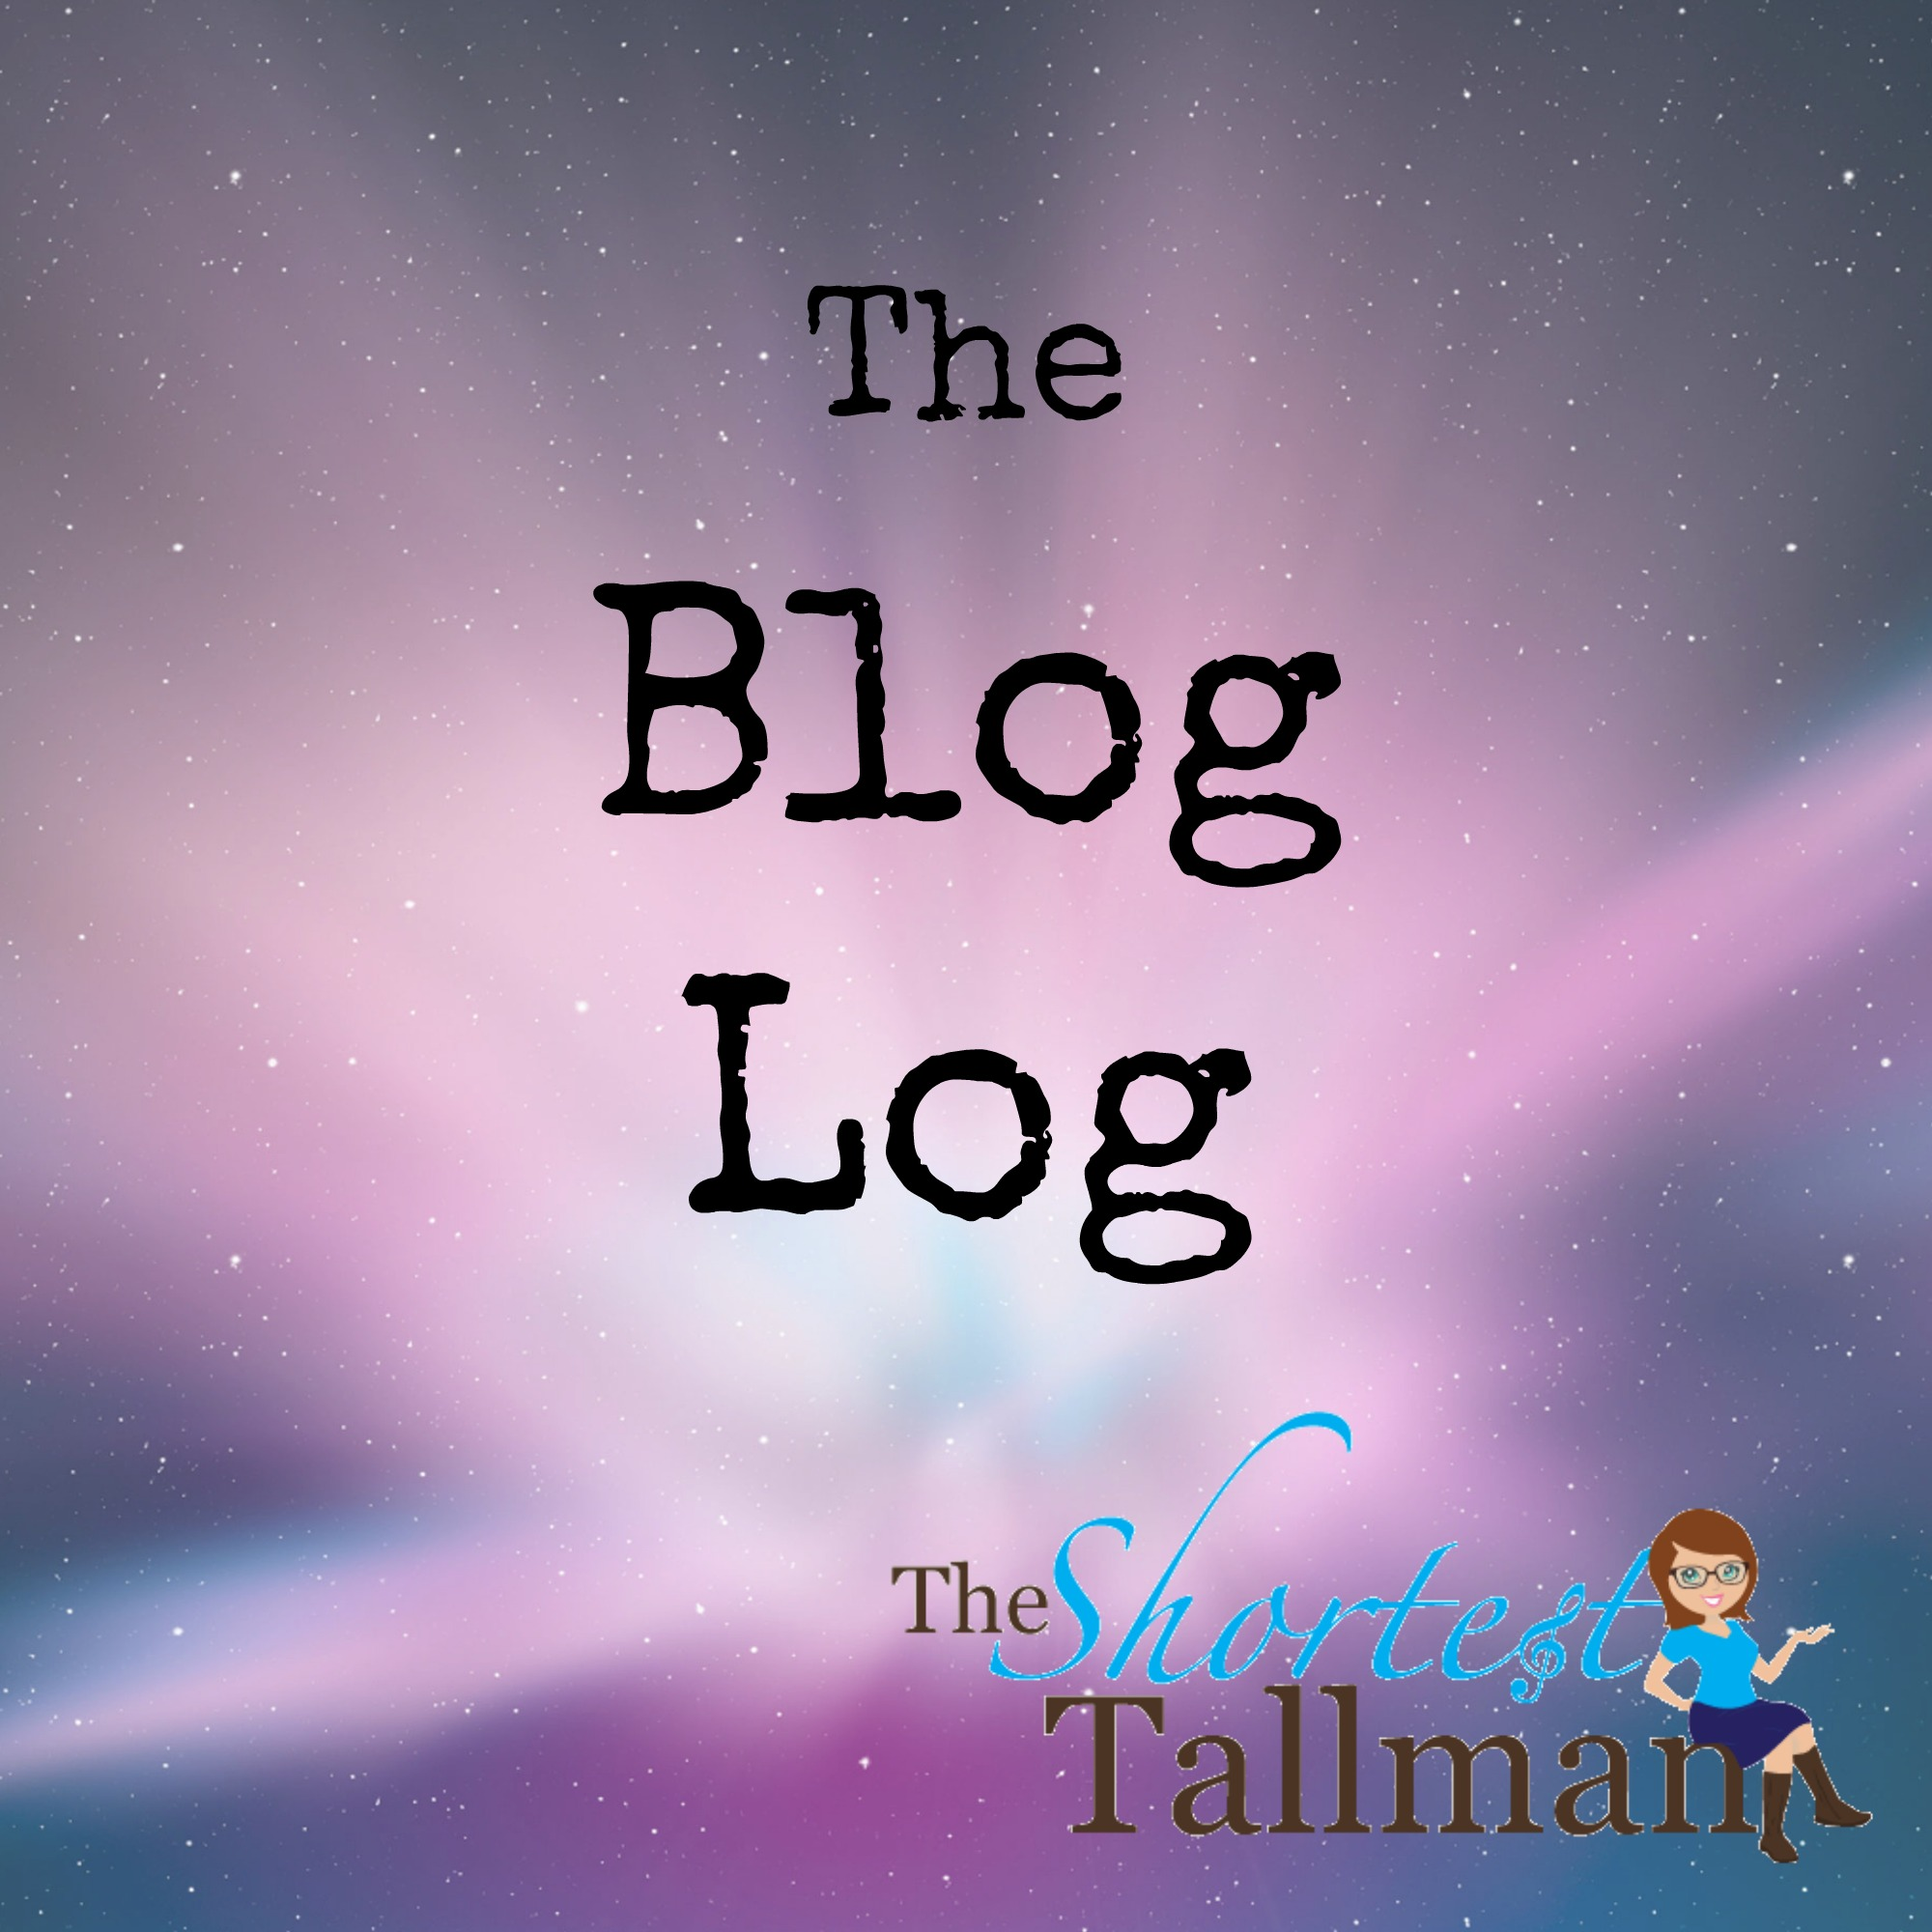 The Blog Log Series! www.theshortesttallman.com